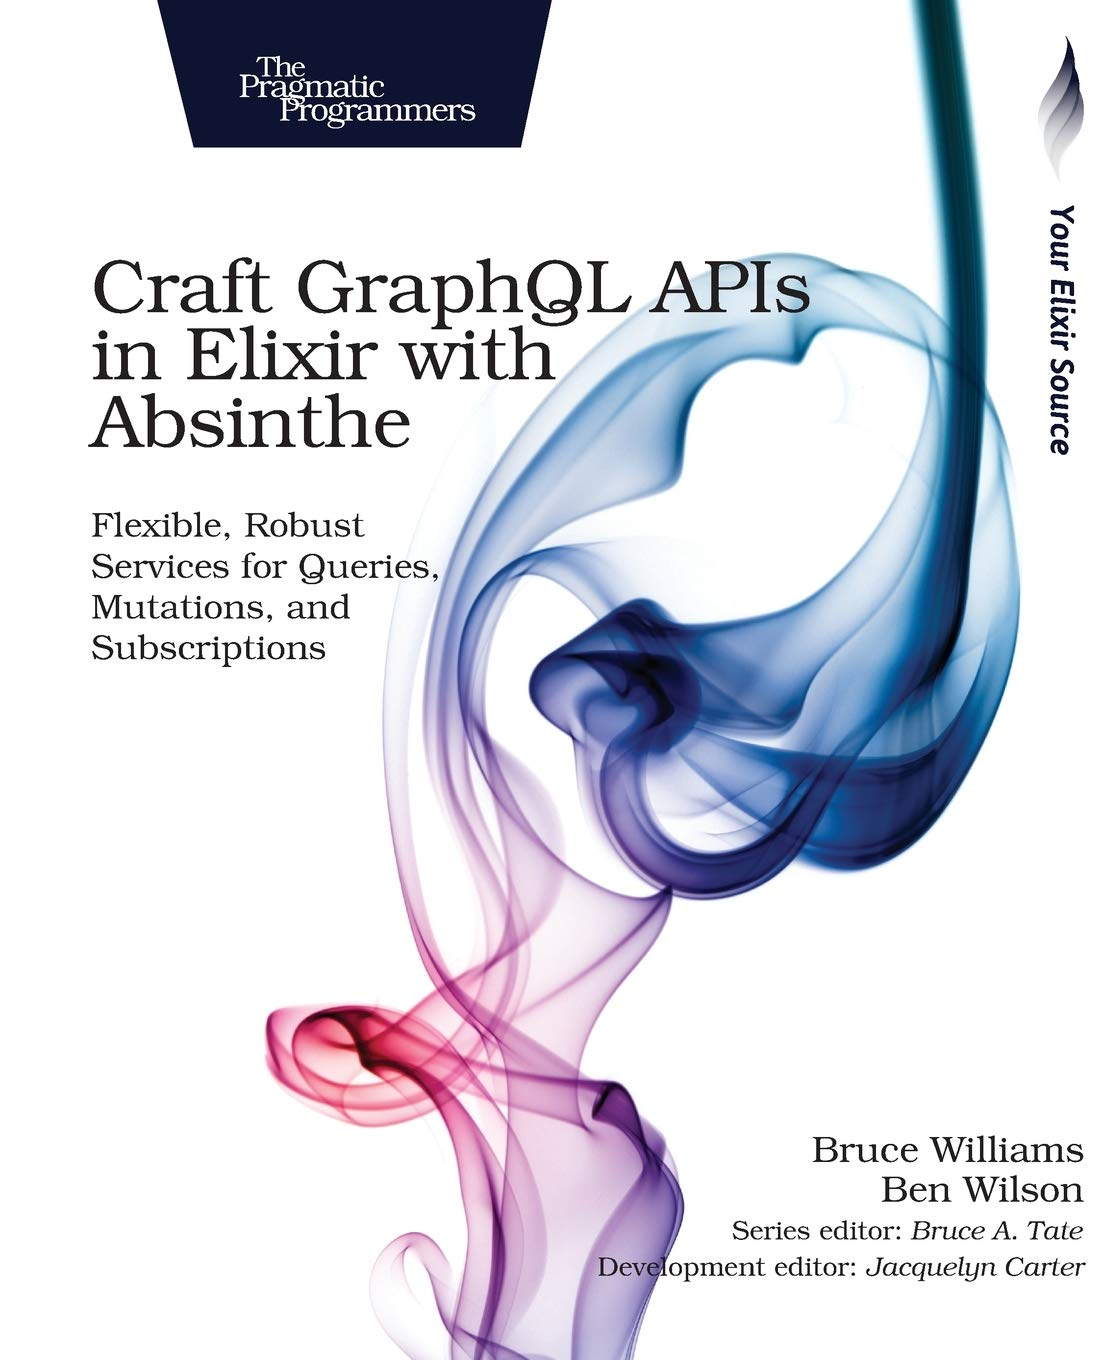 Williams, B: Craft GraphQL APIs In Elixir With Absinthe: Flexible, Robust Services For Queries, Mutations, And Subscriptions